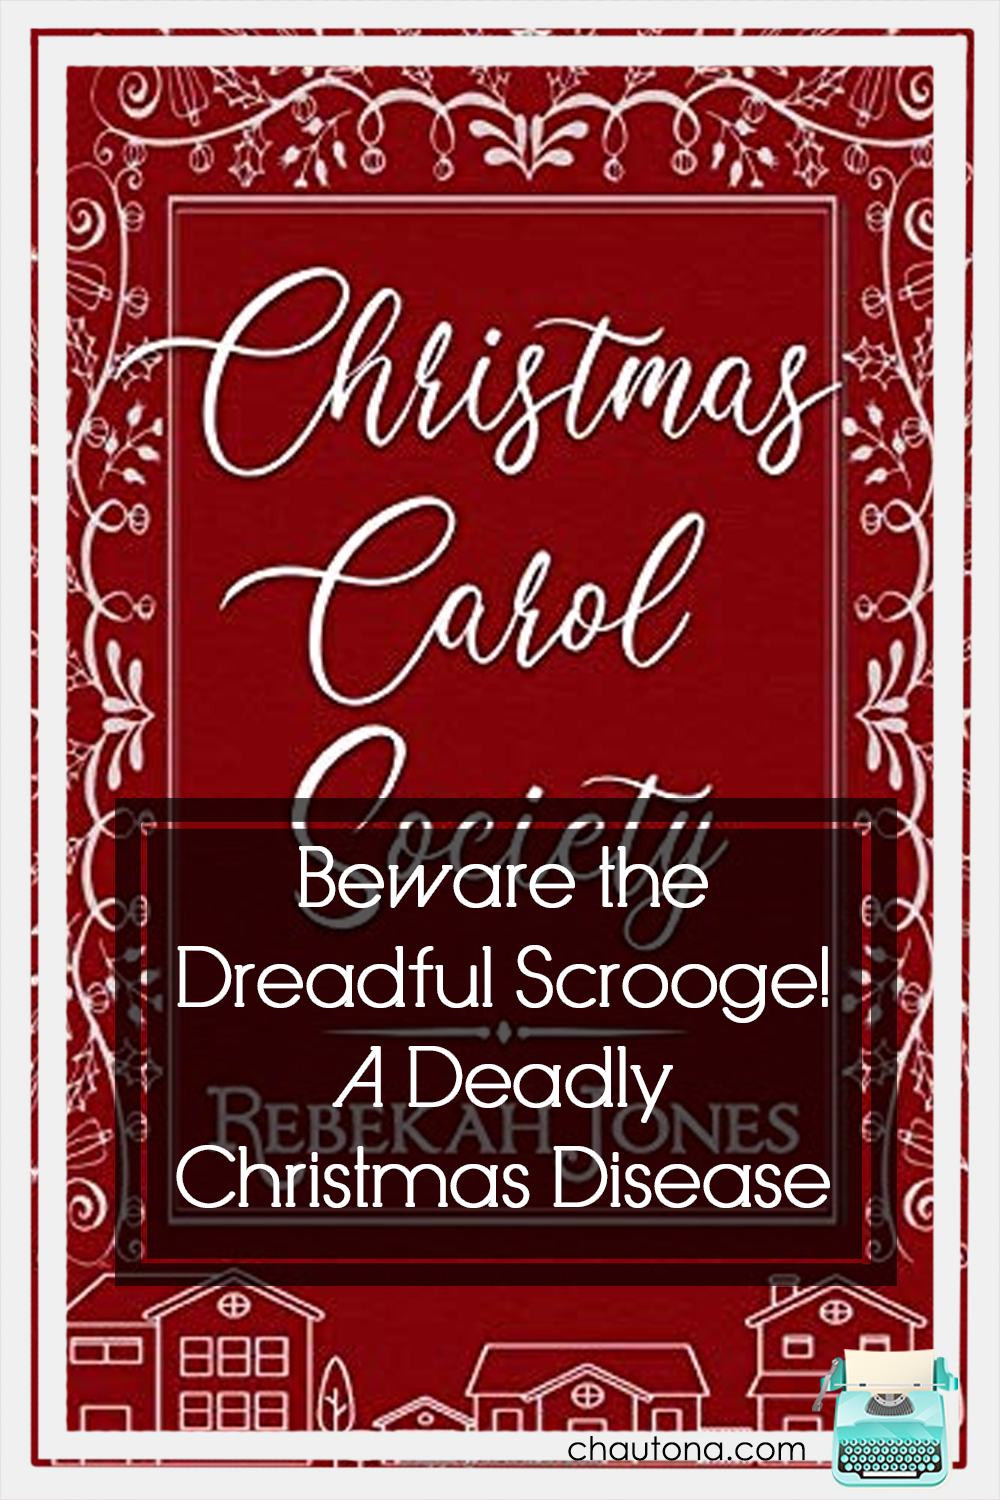 Beware the Dreadful Scrooge! A Deadly Christmas Disease christmas carol society